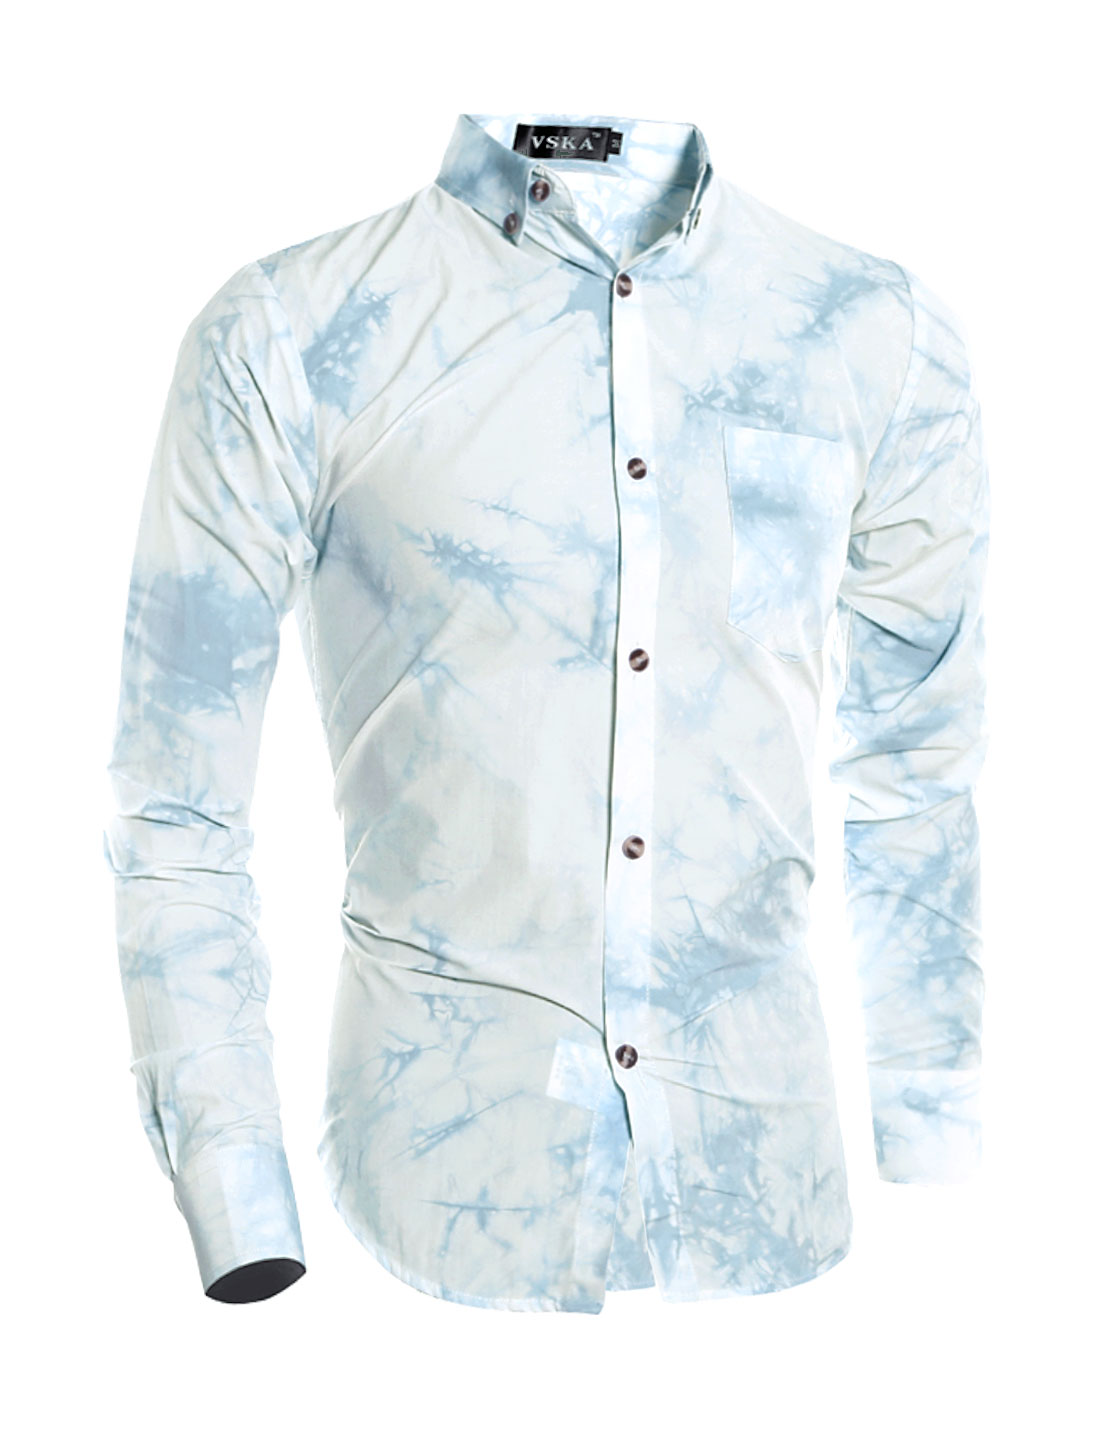 Man Button Closure Tie-Dye Shirt w Pocket Light Blue S